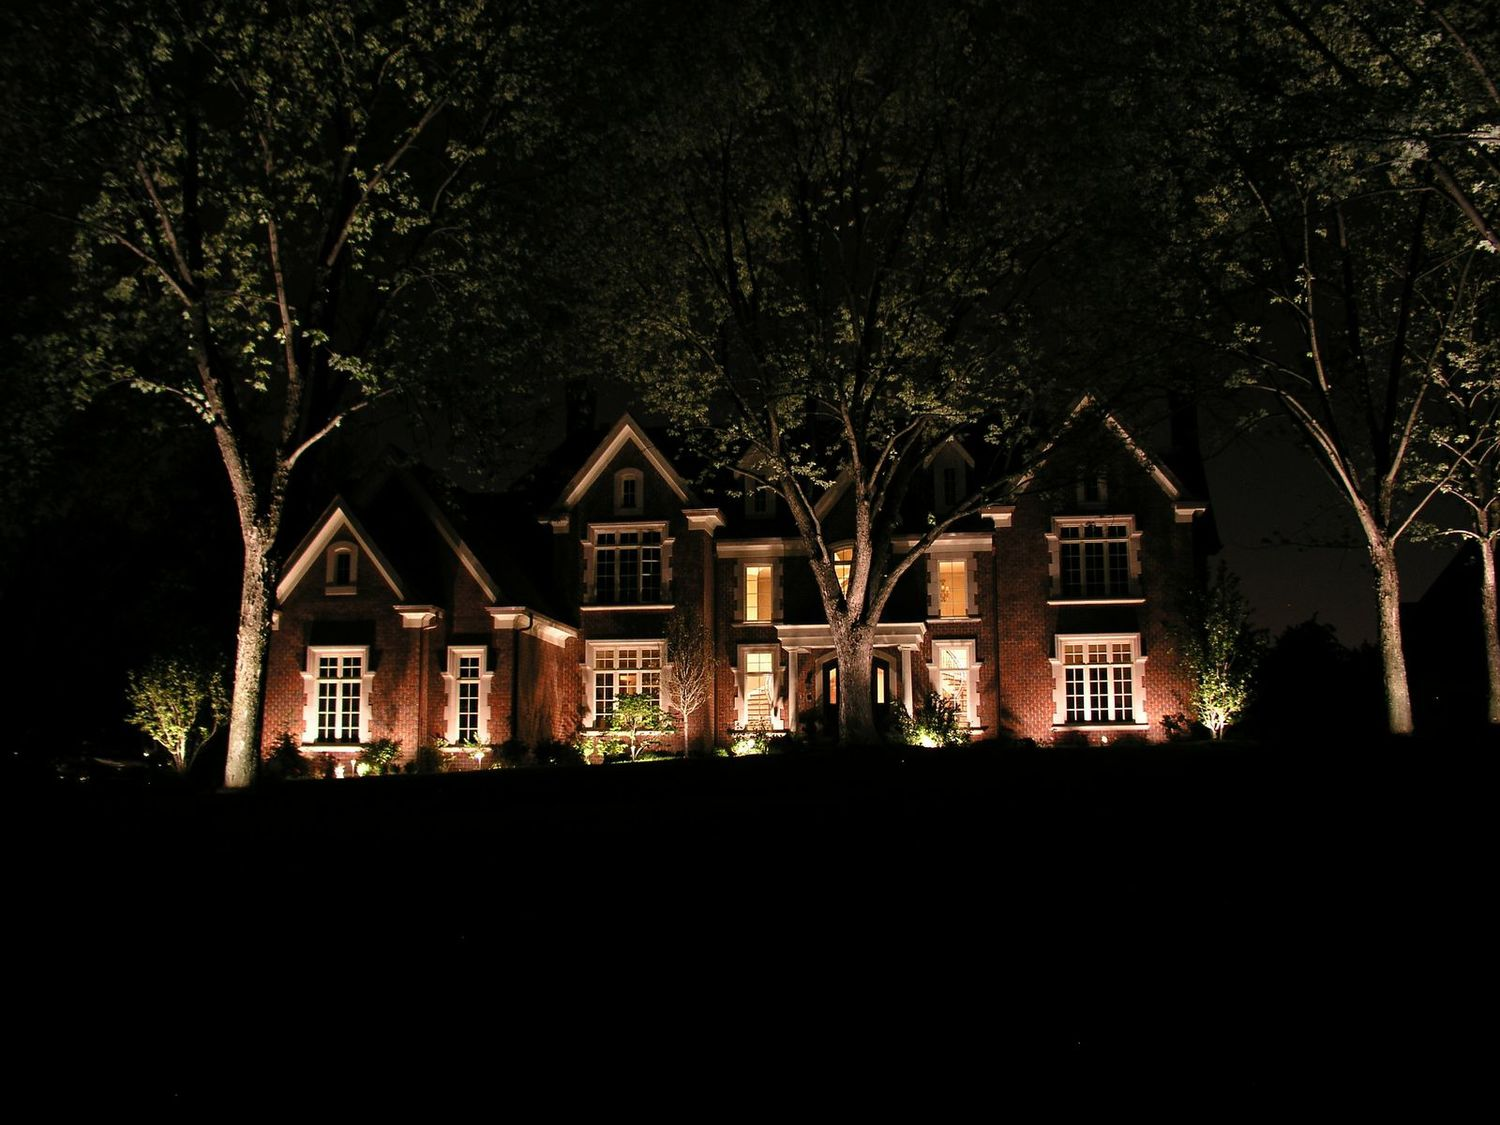 lighting stores naperville yelp naperville il outdoor lighting landscape illinois